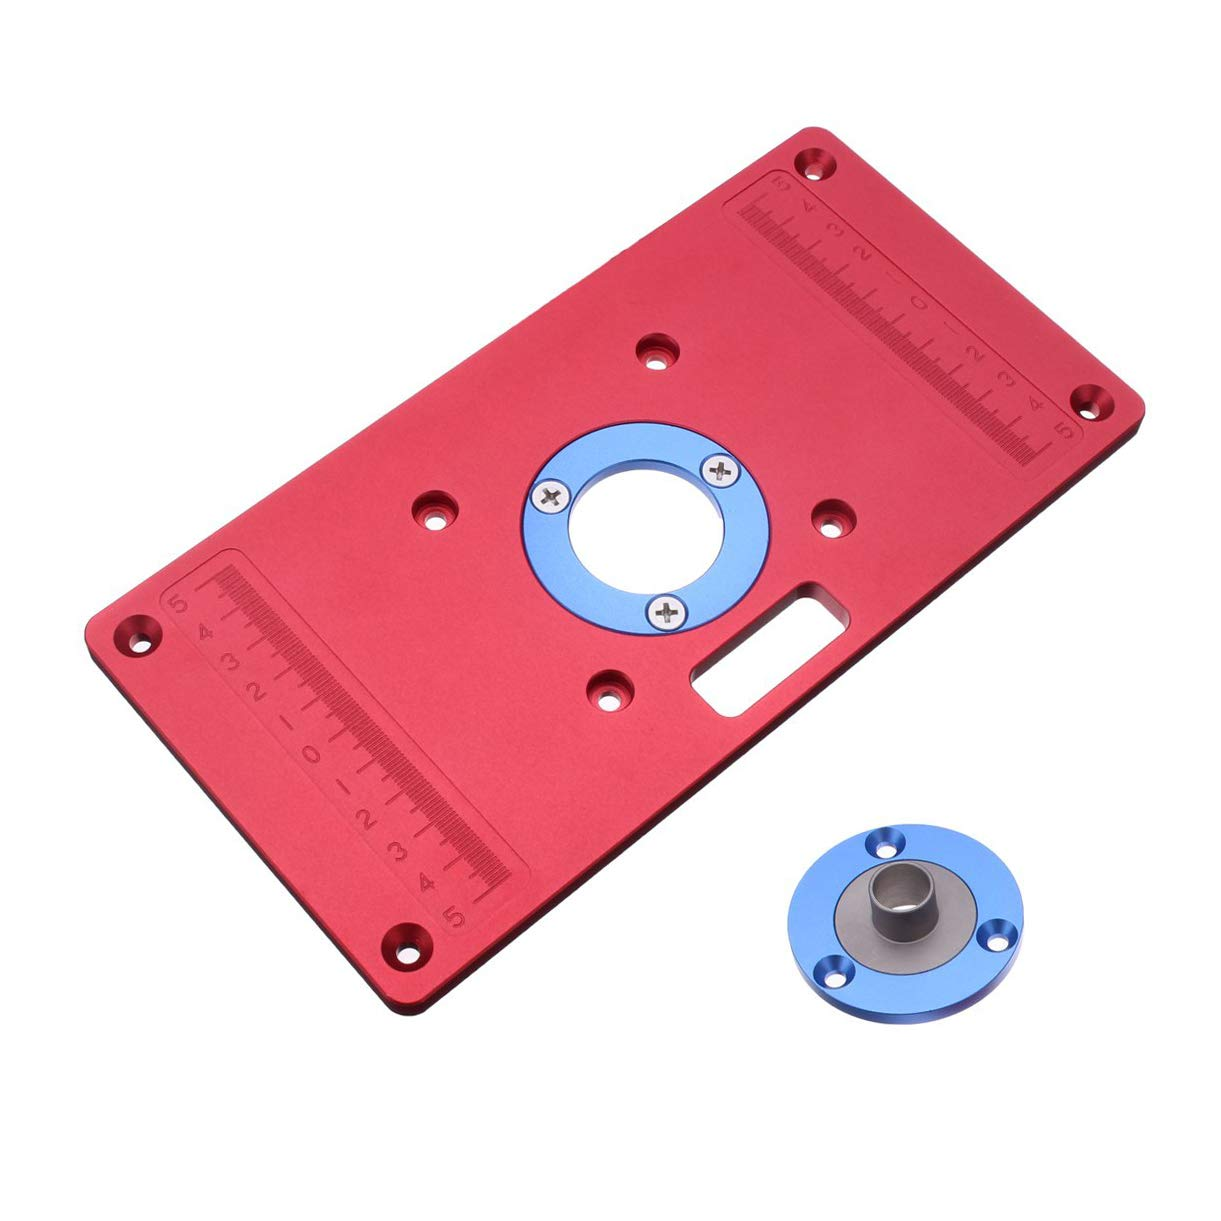 Aluminium Alloy Universal Router Table Insert Plate For Woodworking Engraving Machine by Okared